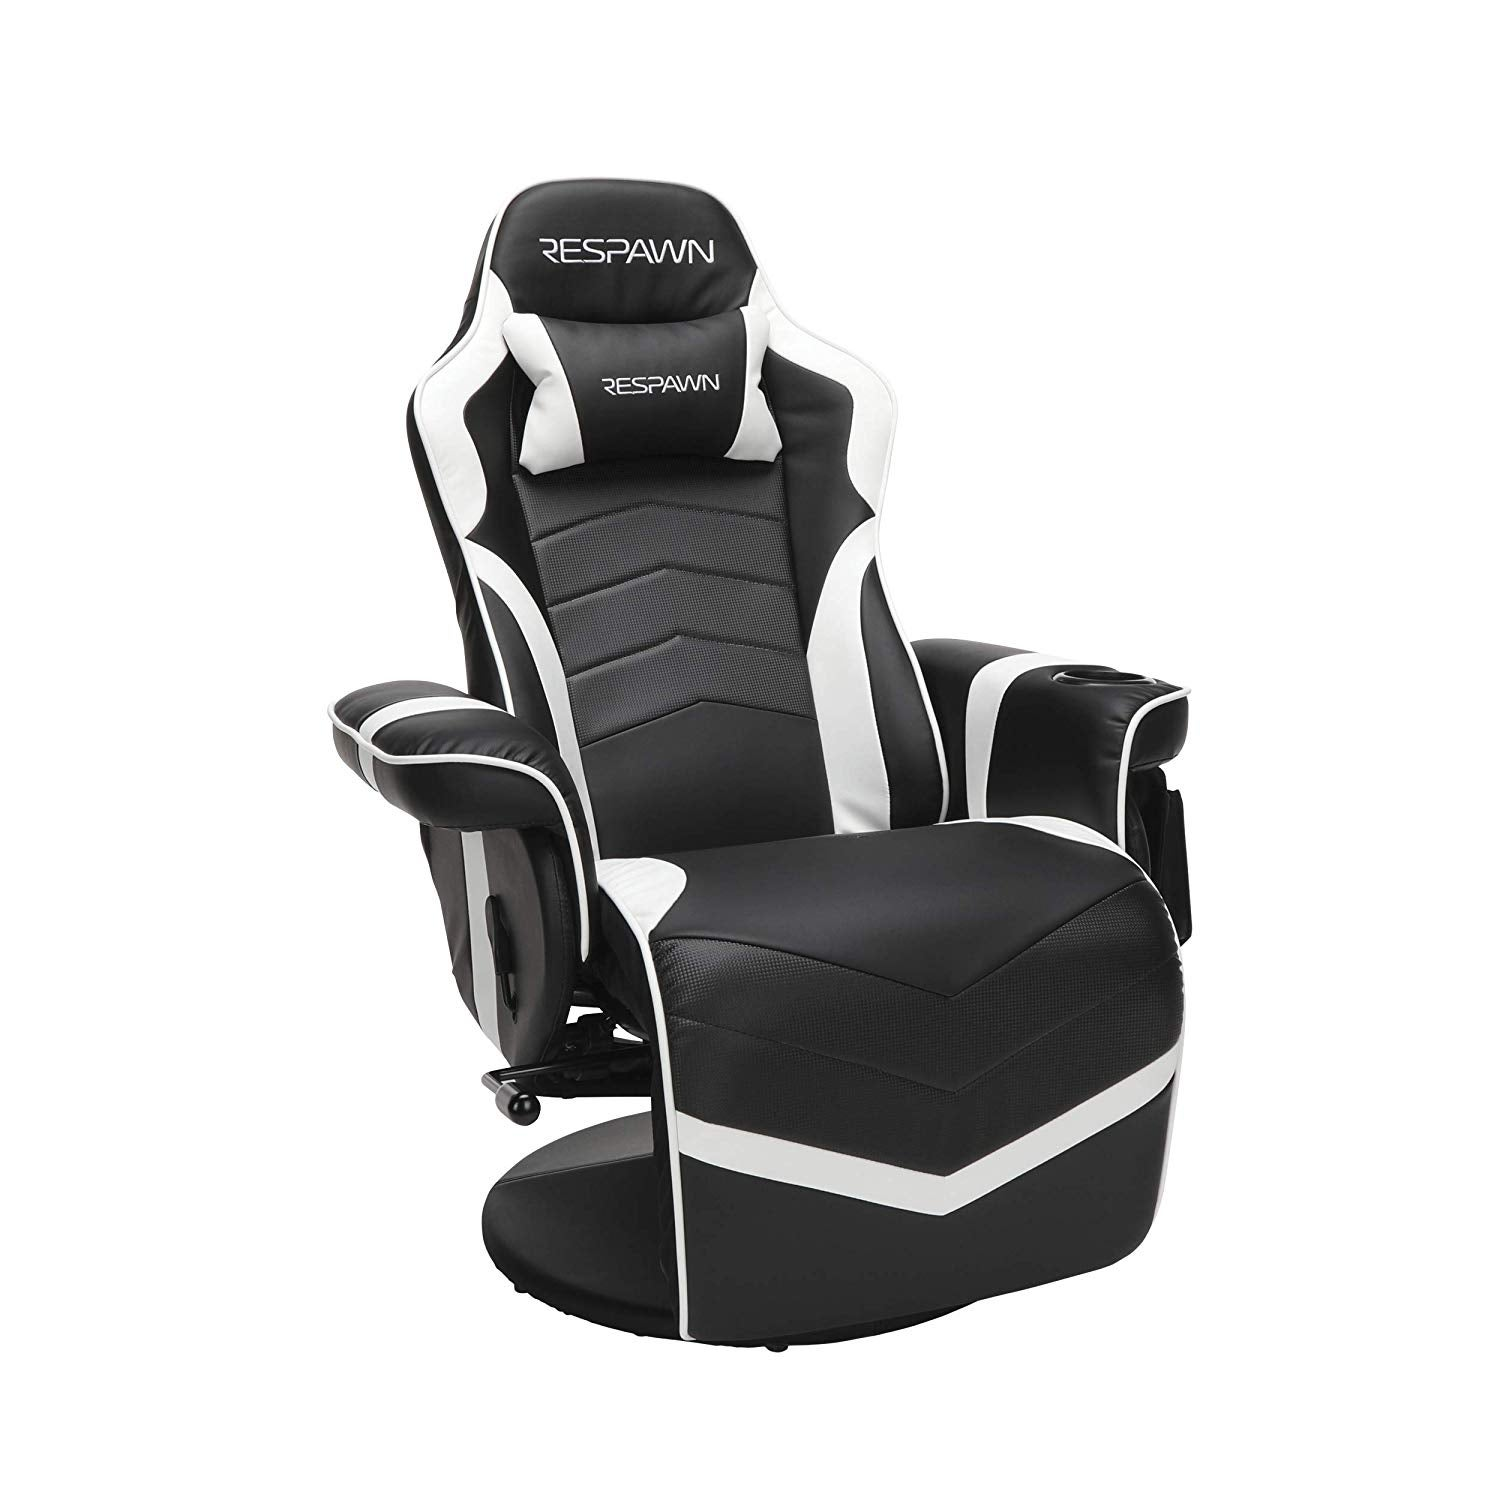 Video Game Chairs The Best Gaming Chairs 2019 Ign